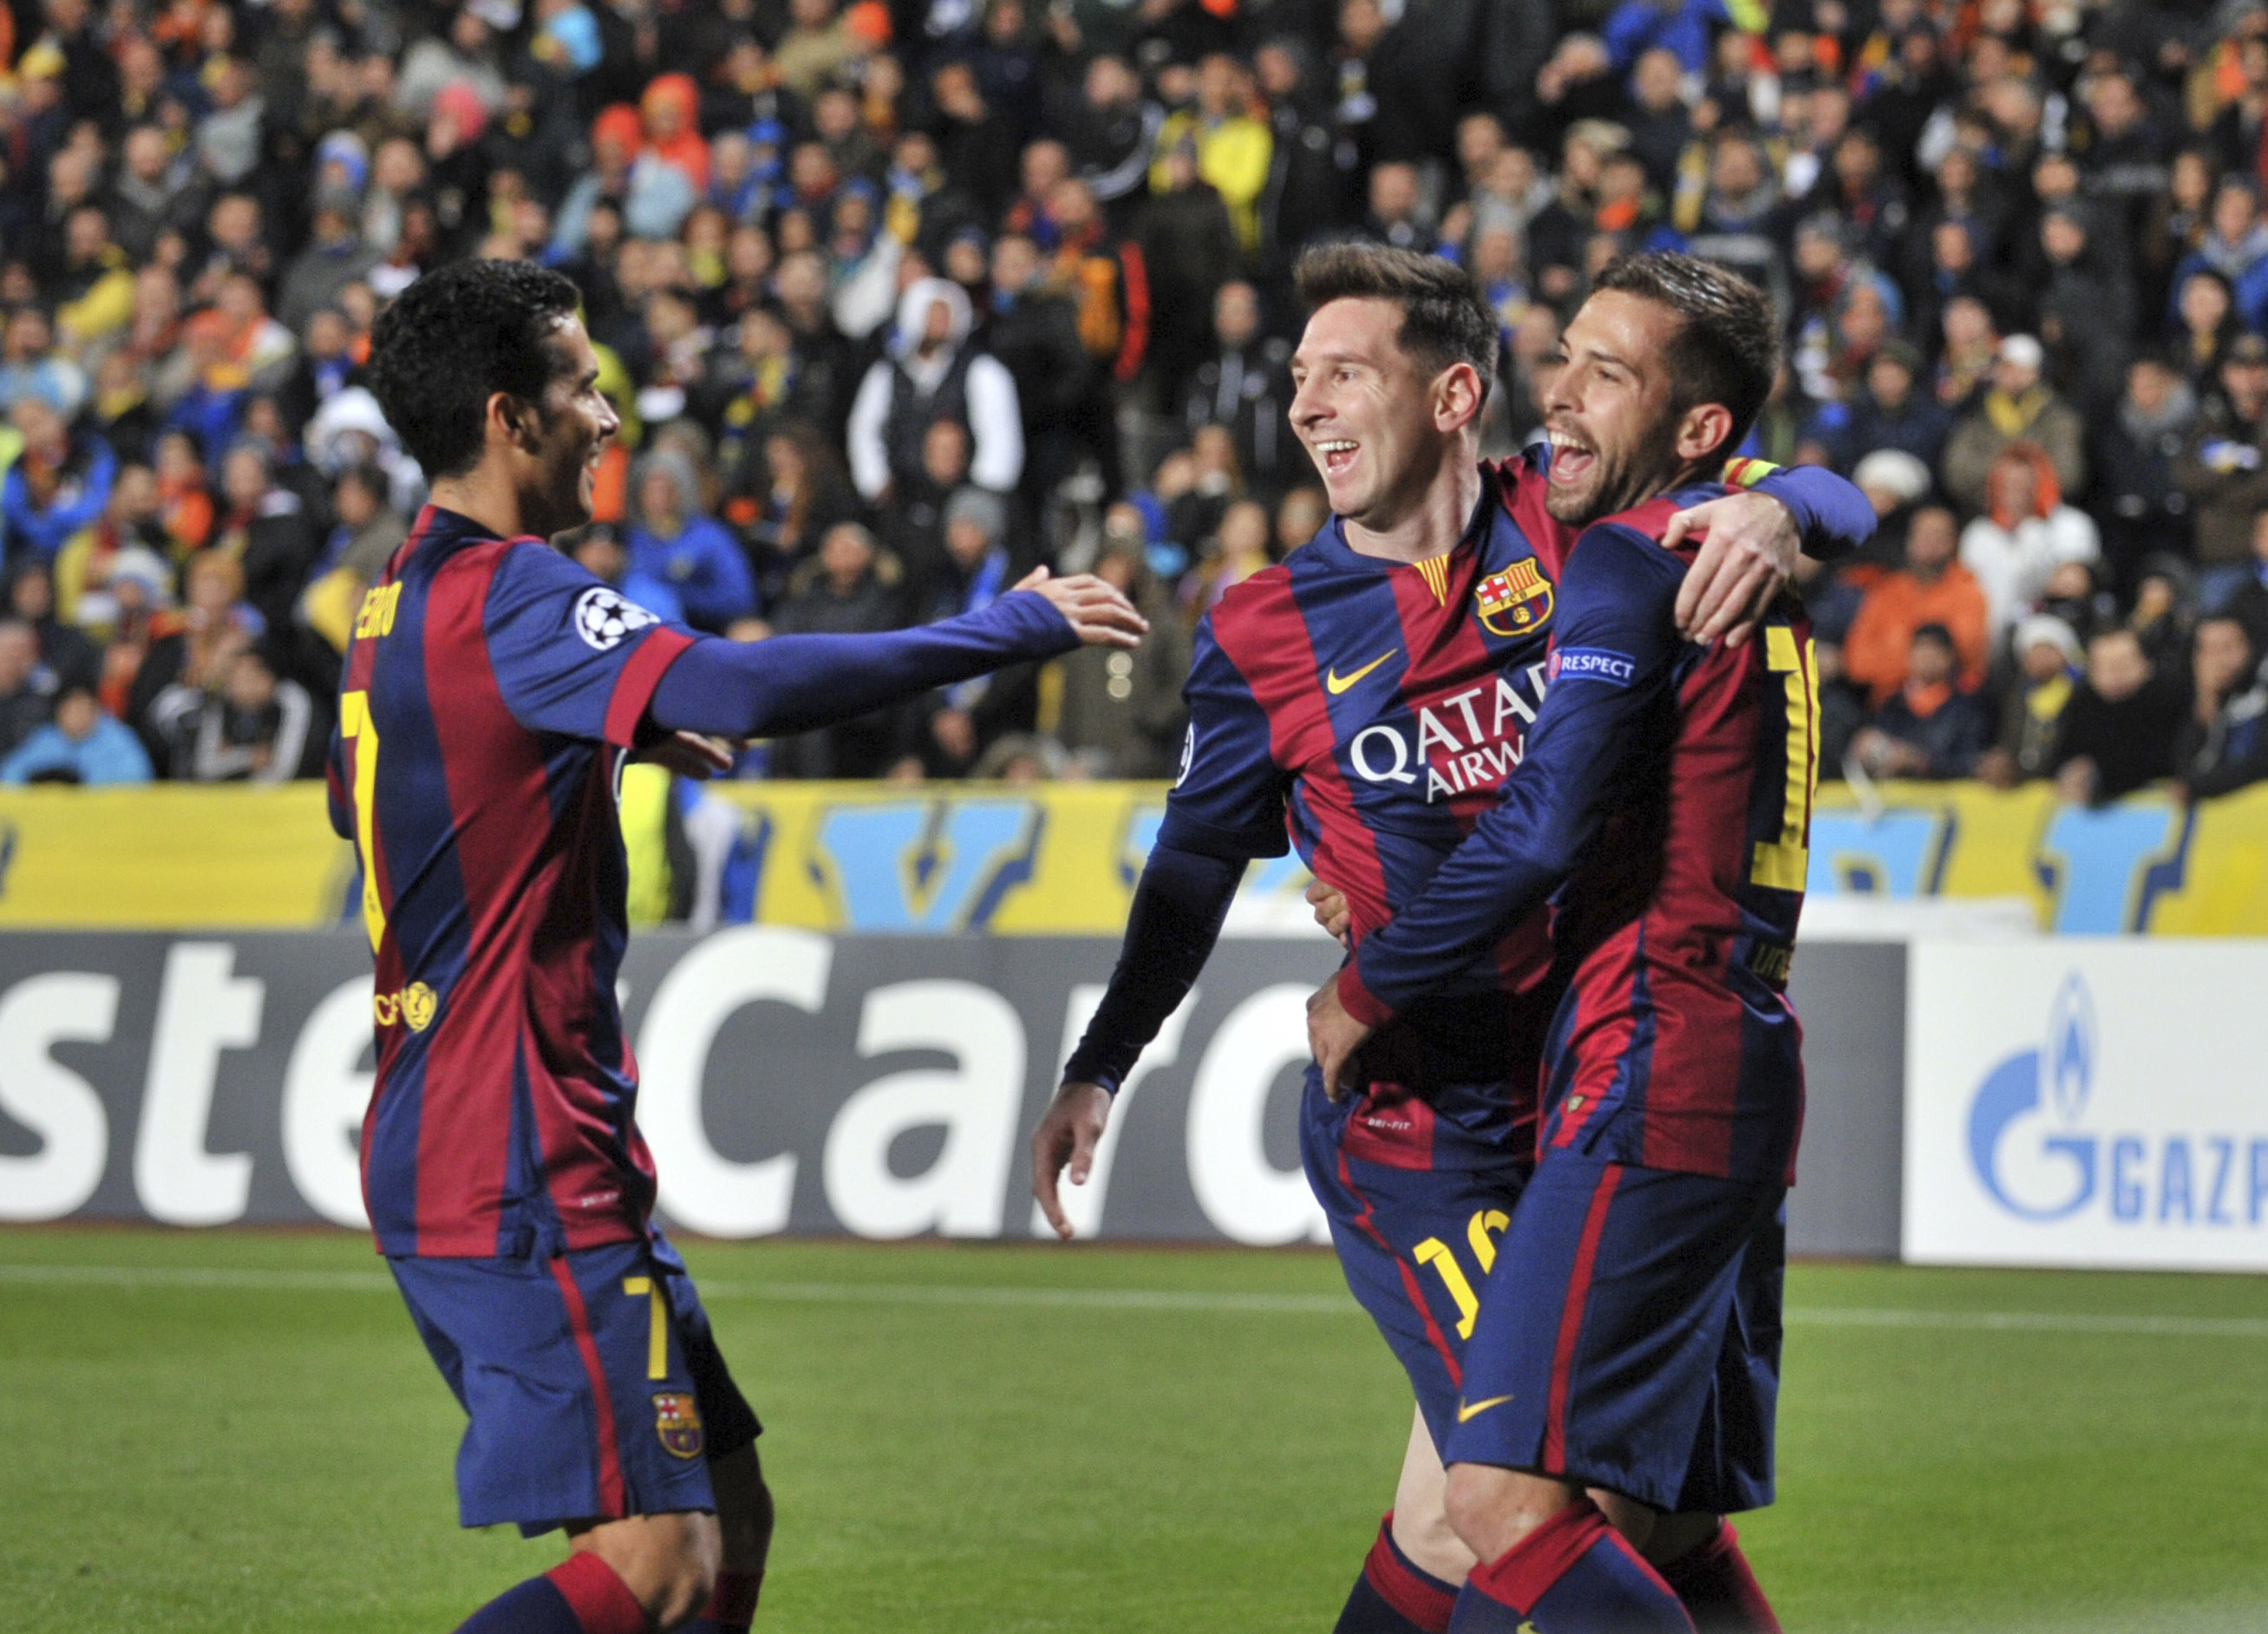 Lionel Messi celebrates with teammates after his record-breaking goal.